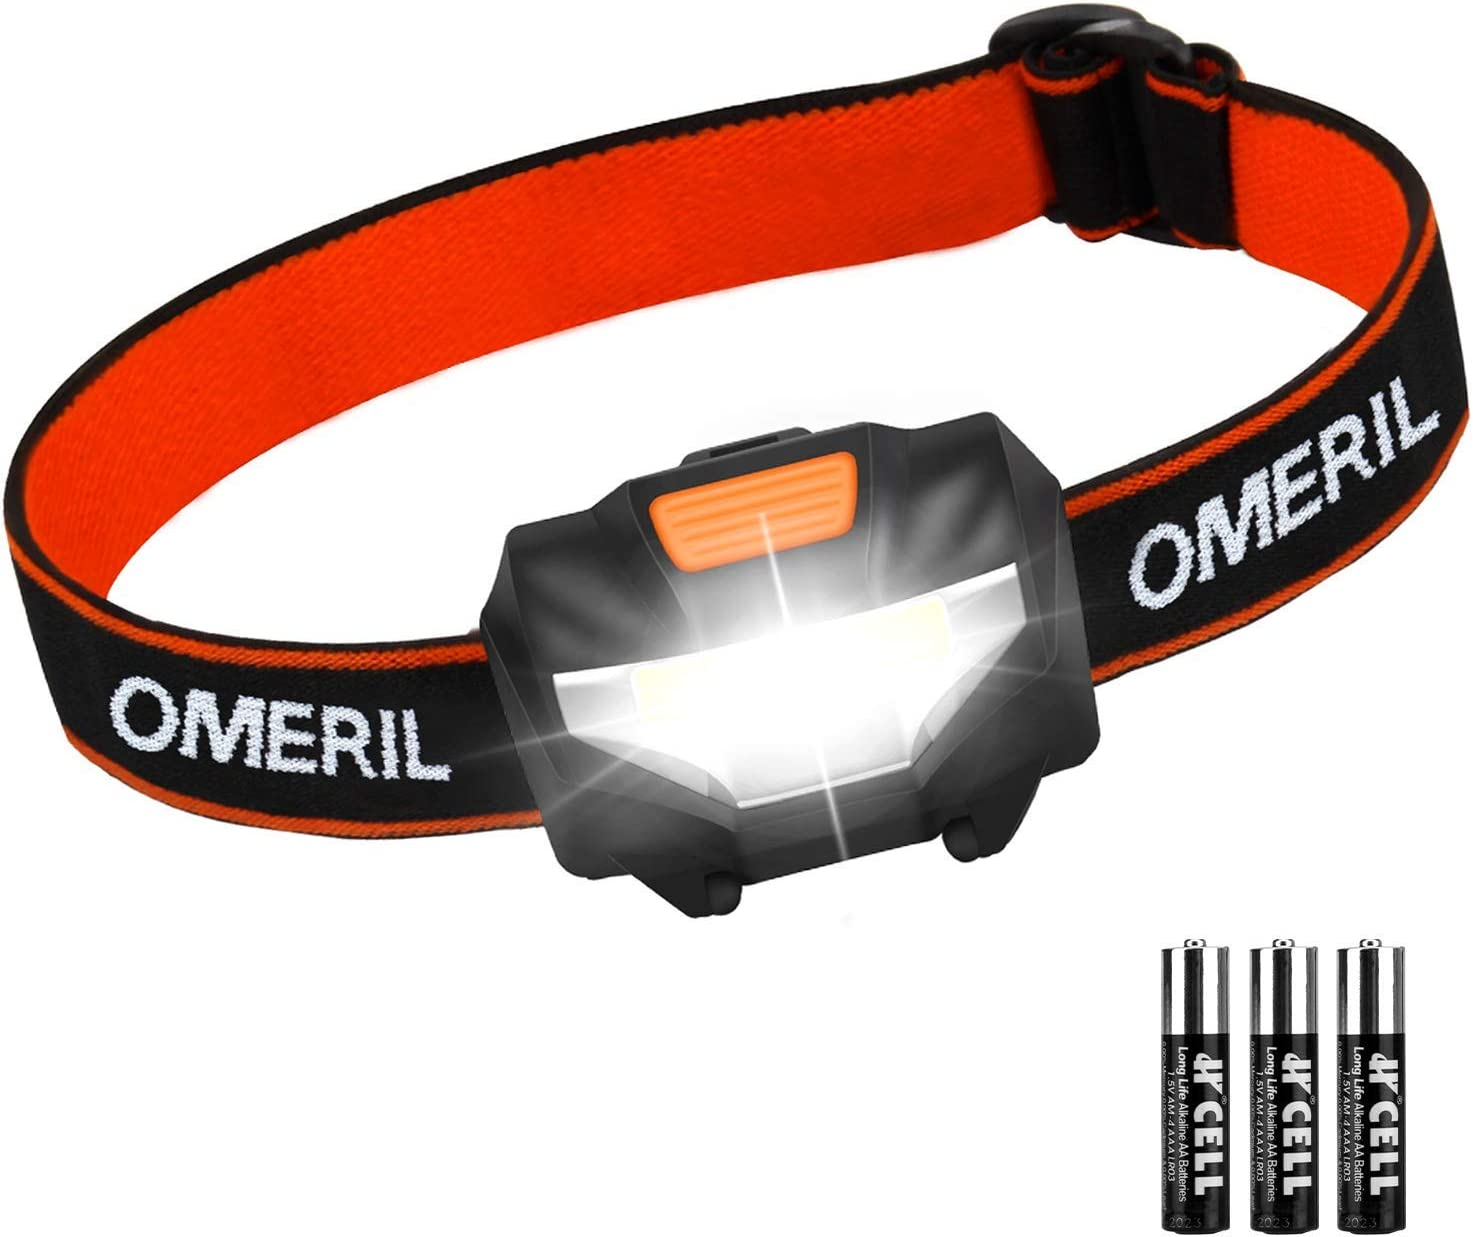 6 x AAA Battery Operated Cycling Hiking Running Included Fishing 2 Packs Super Bright LED Headlamp with 3 Modes OMERIL Headlamp Flashlight Waterproof COB Head Lamp for Kids /& Adults Camping